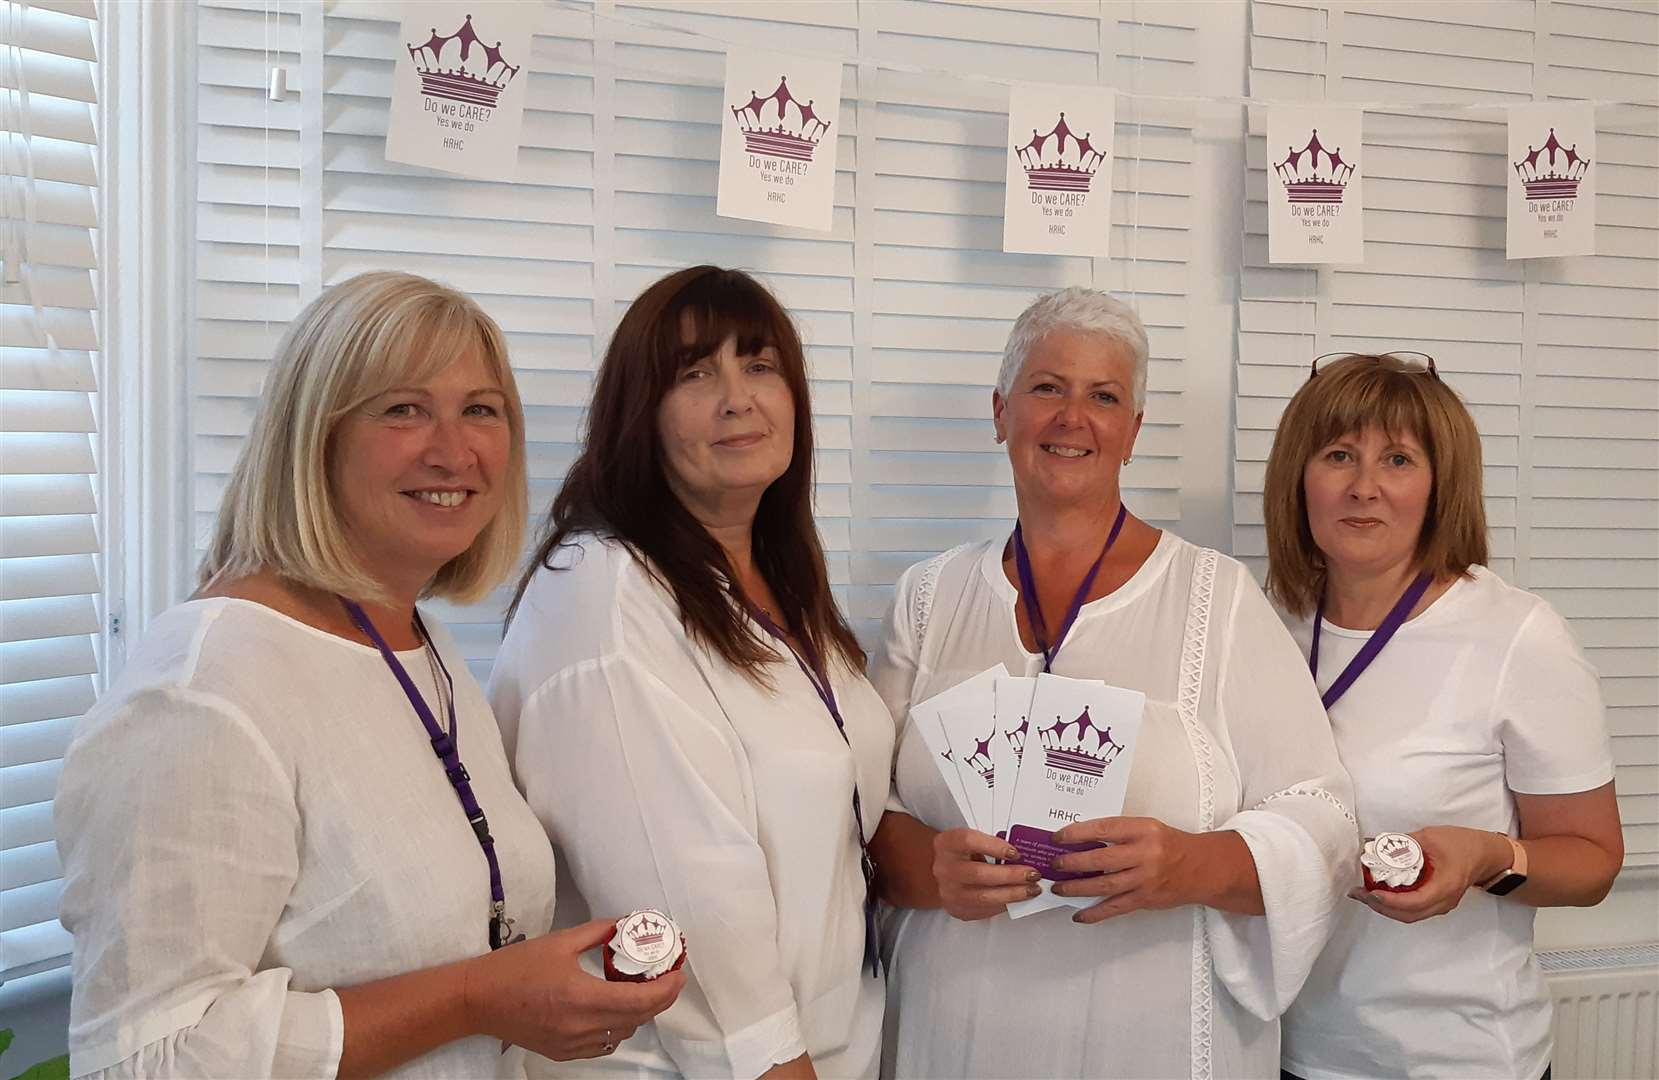 Debbie Cowens, Amanda Hood, Donna Ryan and Mary Hollis have launched a new care business in Deal and Dover